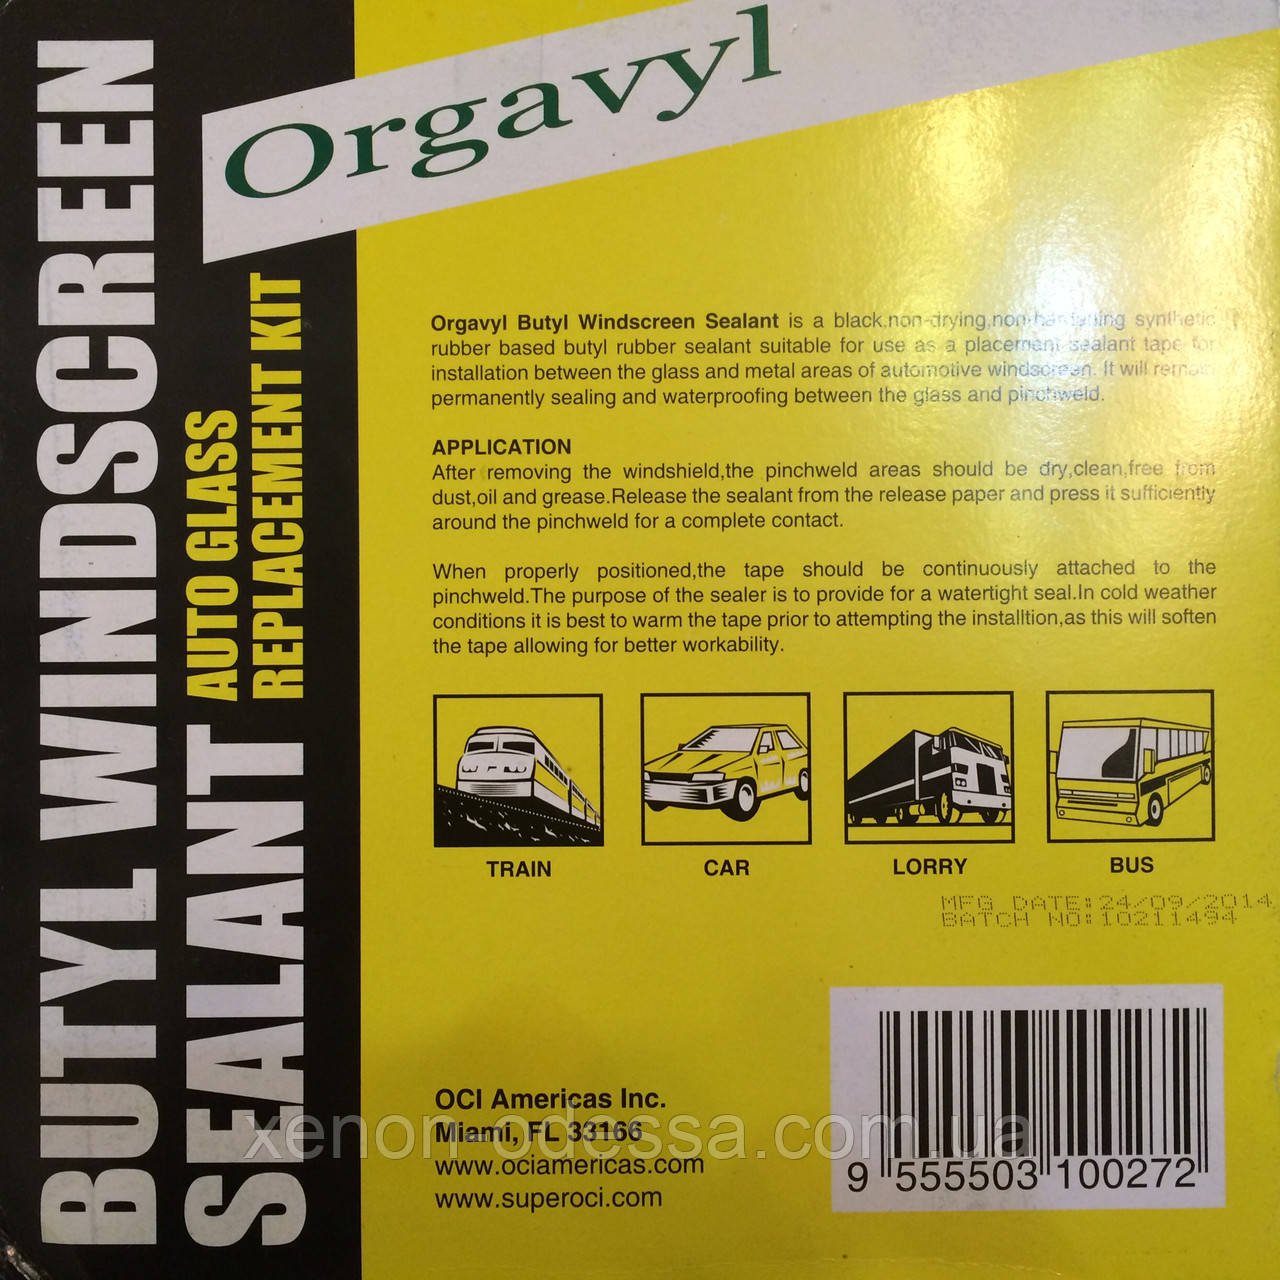 Герметик для фар ORGAVYL BUTYL WINDSCREEN SEALANT для установки линз - фото 2